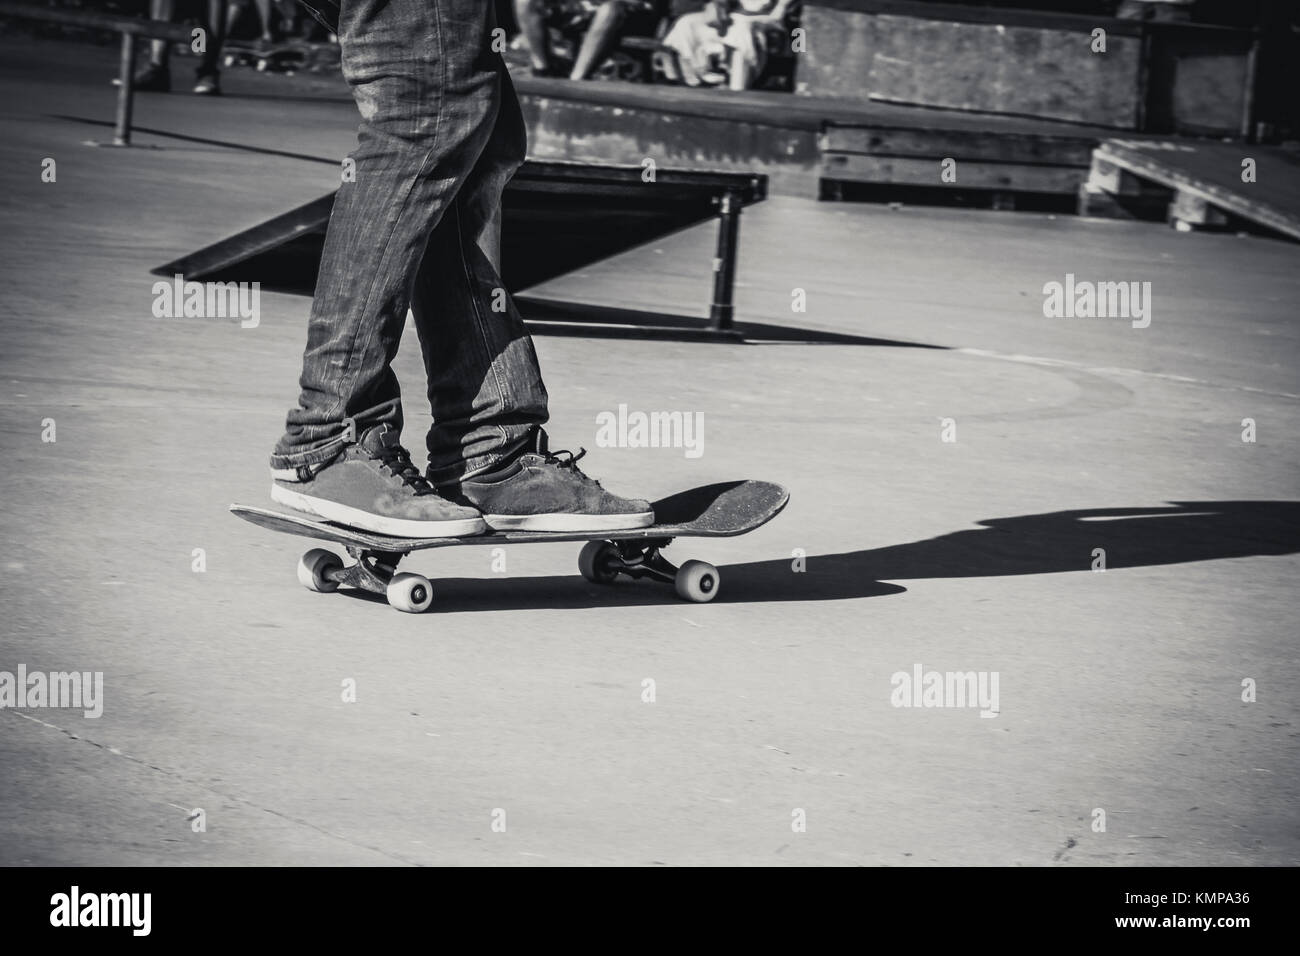 Speed skater stock photos speed skater stock images alamy quick trip on skateboard stock image biocorpaavc Choice Image